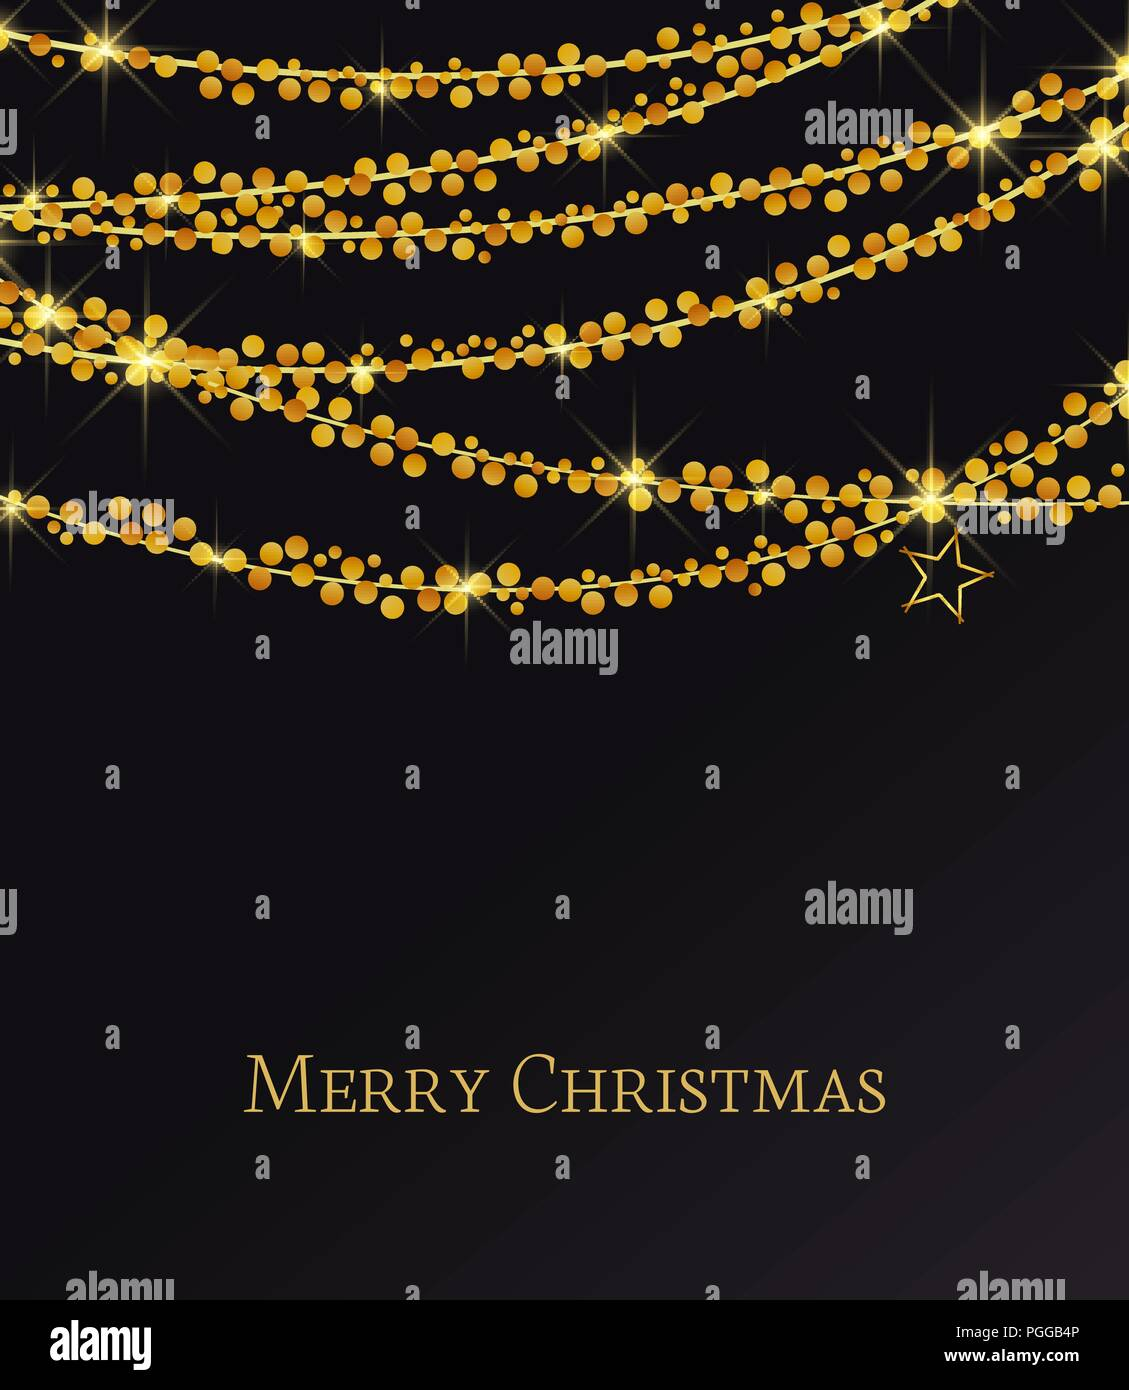 c0a5f54c740 Vector illustration abstract Christmas background. Lights on black  background. Gold Holiday New year glitter.